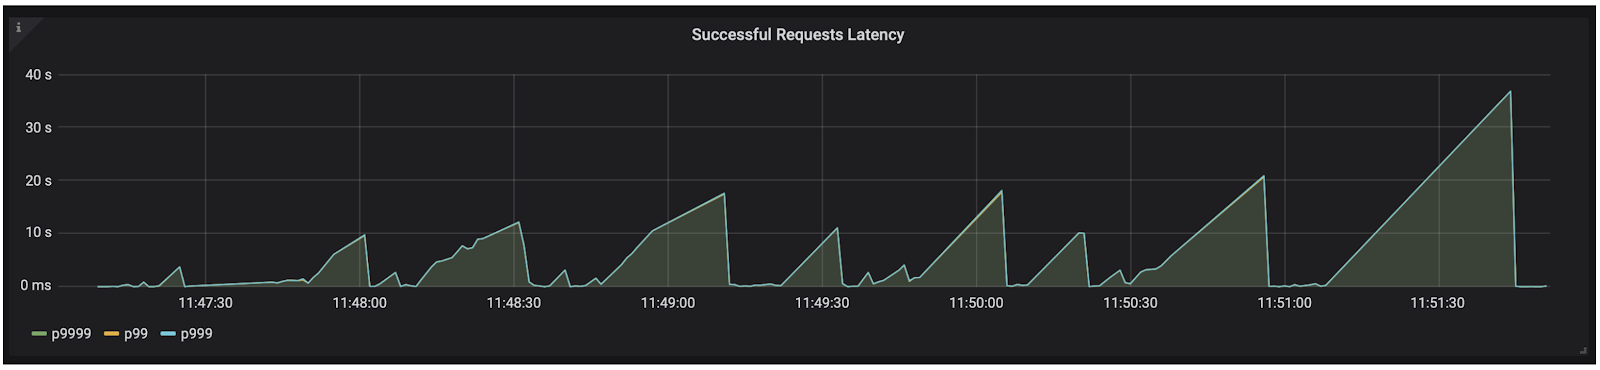 Successful Requests Latency